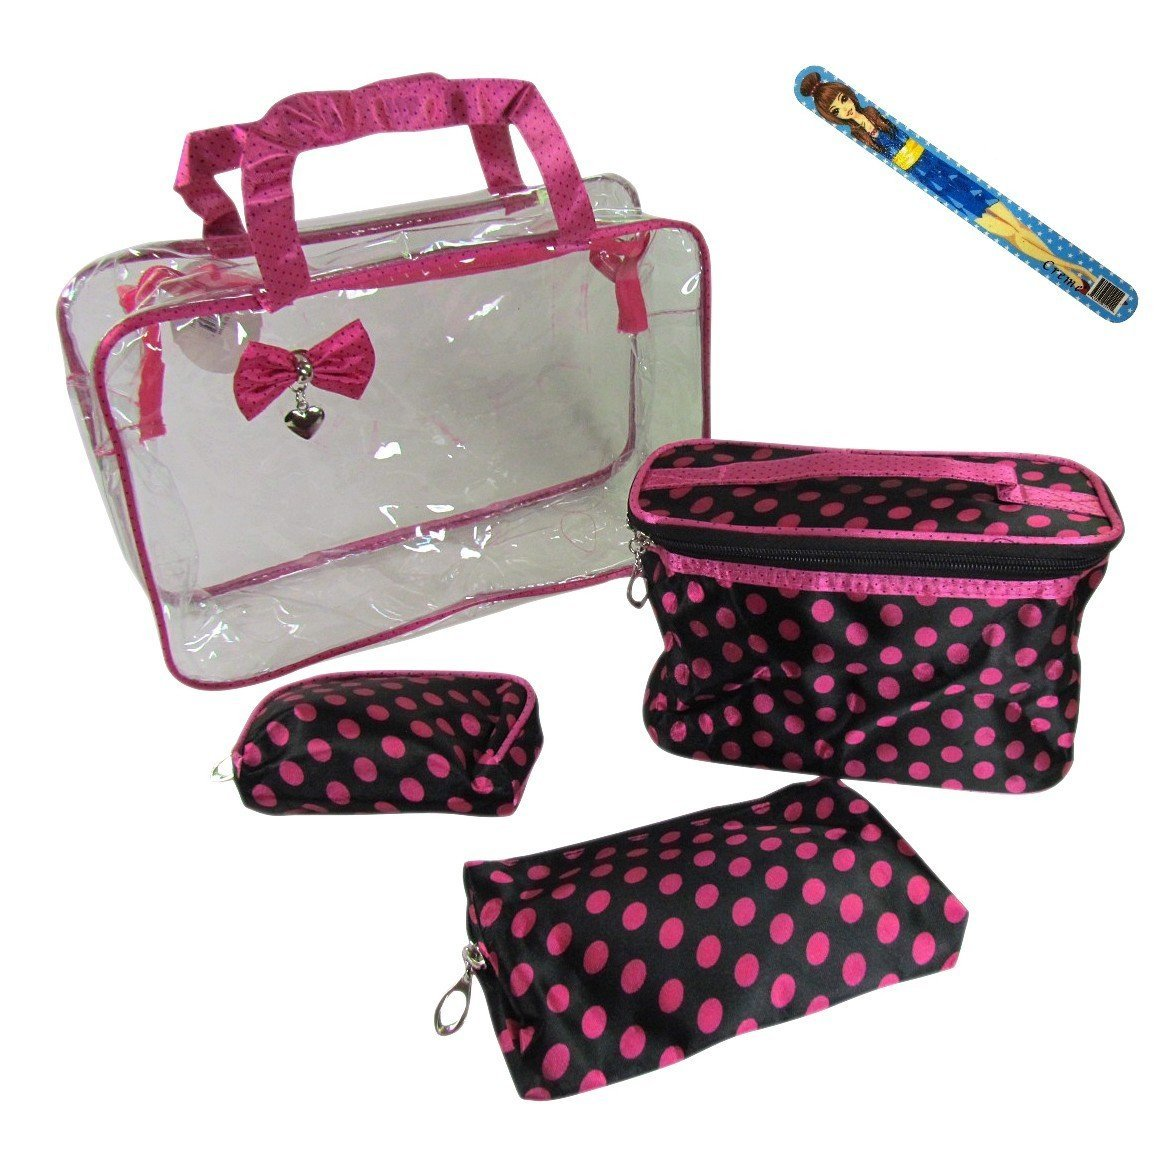 """4-piece Cosmetic Travel Make-up Bag Set AND 9"""" Fashion Nail File: Large See-through Purse with Handles (12""""x9""""x4""""), Oval Toiletry Bag with Handle (8.5""""x4""""x5""""), Medium Make-up Case (6.5""""x5""""x1""""), Small Cosmetics Pouch (4""""x5""""x1"""") - Black with Large Pink Dots"""